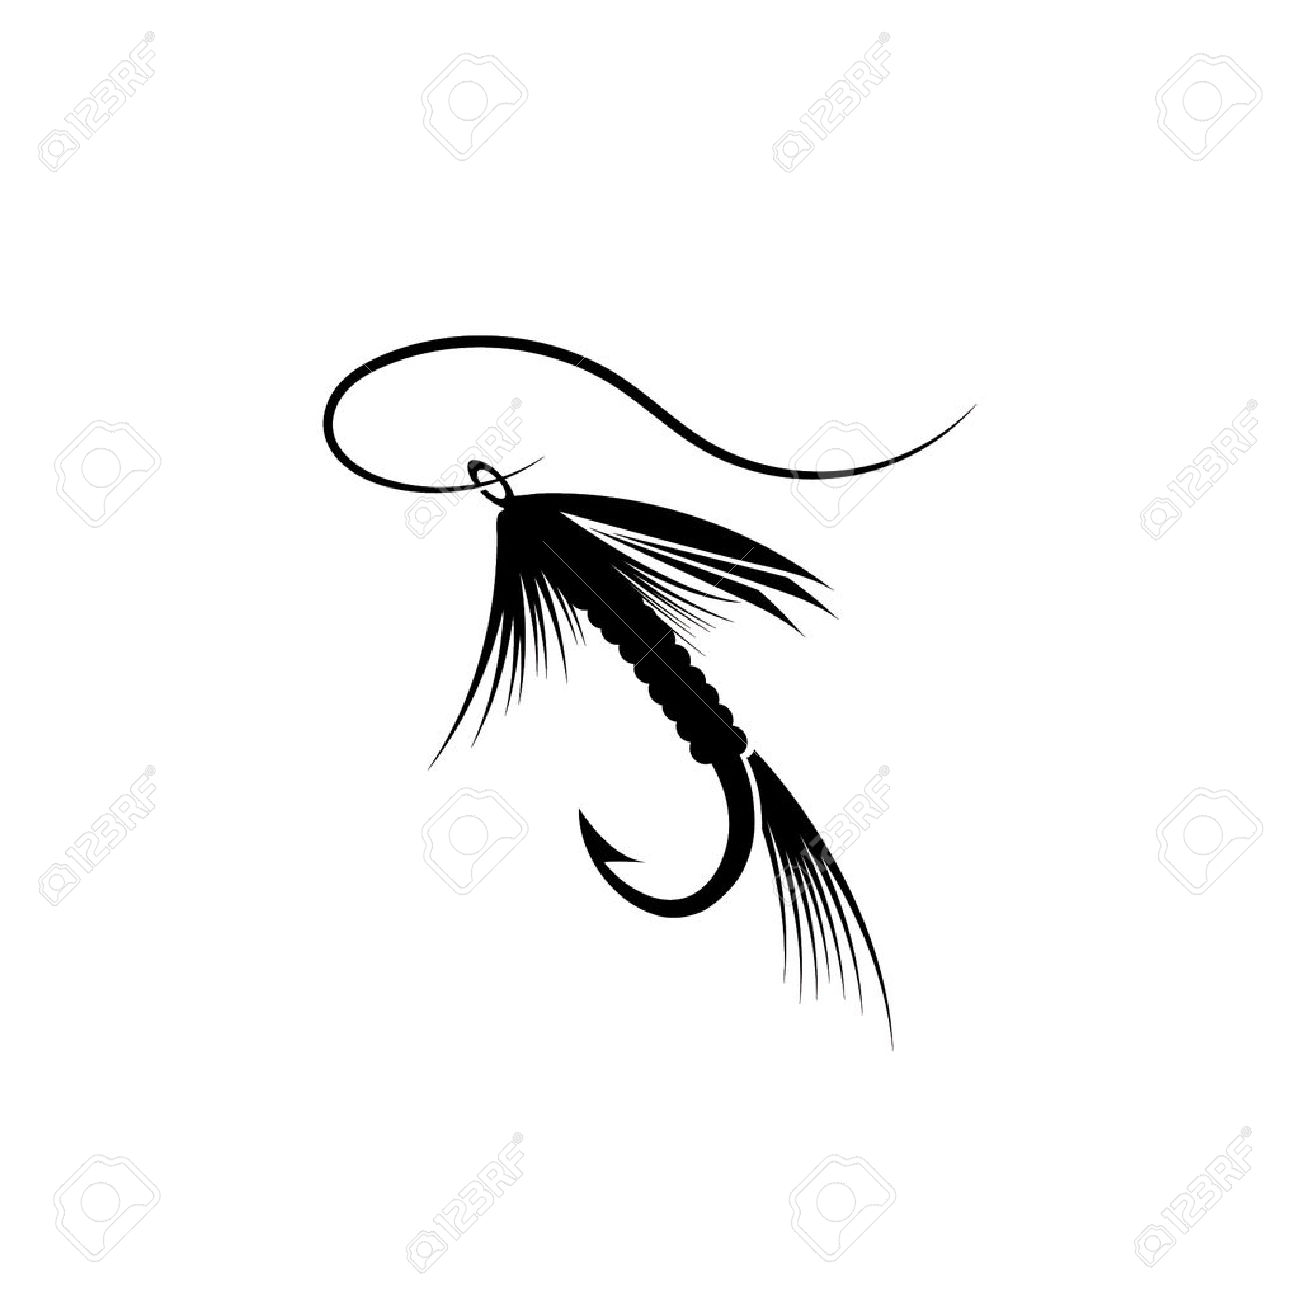 1300x1300 Clipart Of Fly Fishing